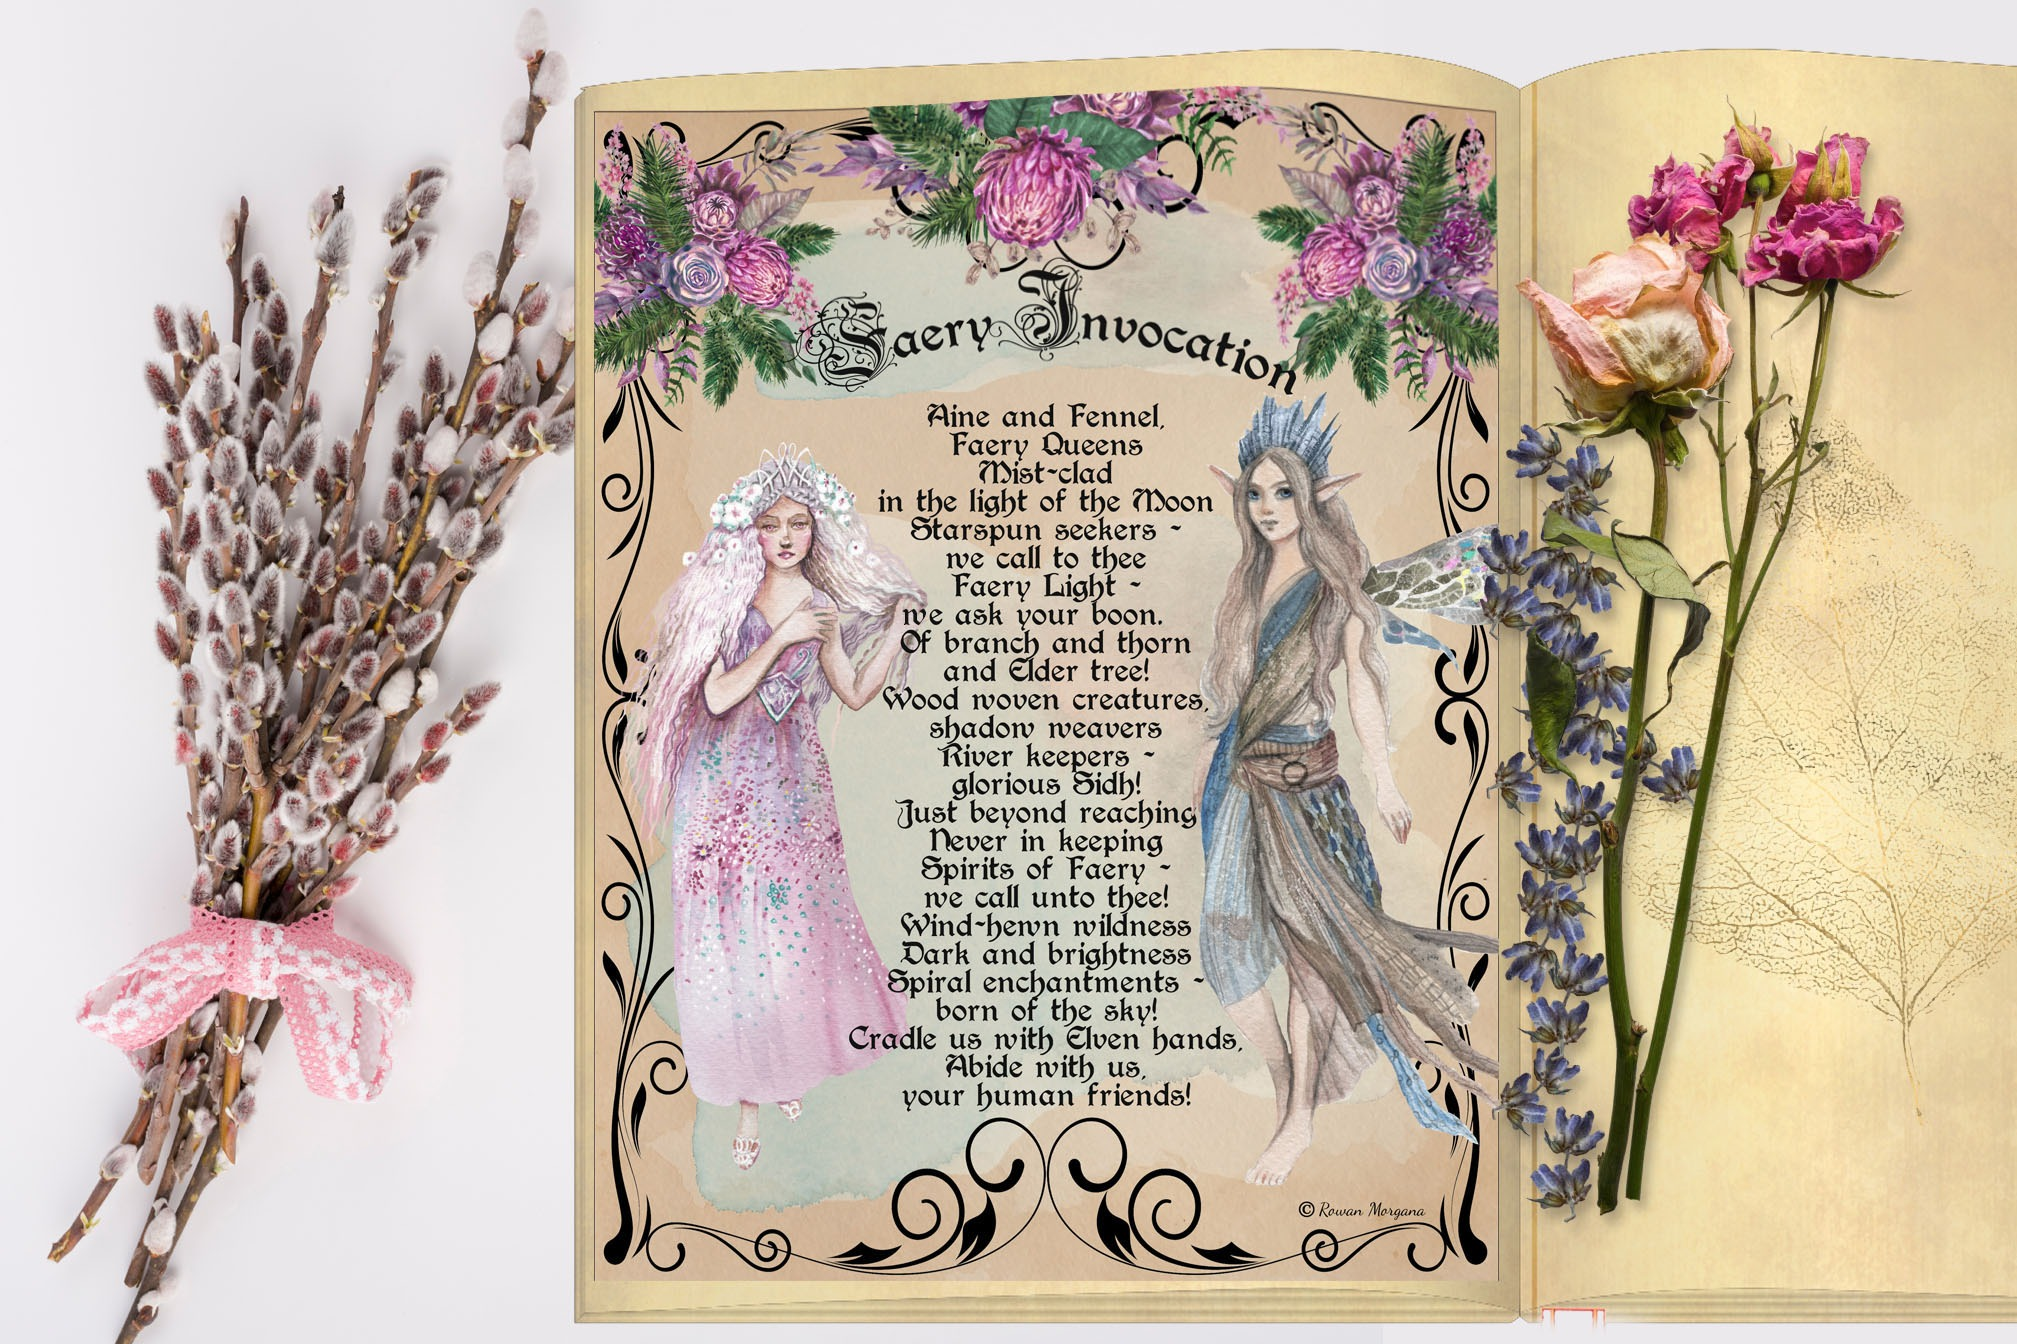 FAERY INVOCATION  - Realm of the Fey